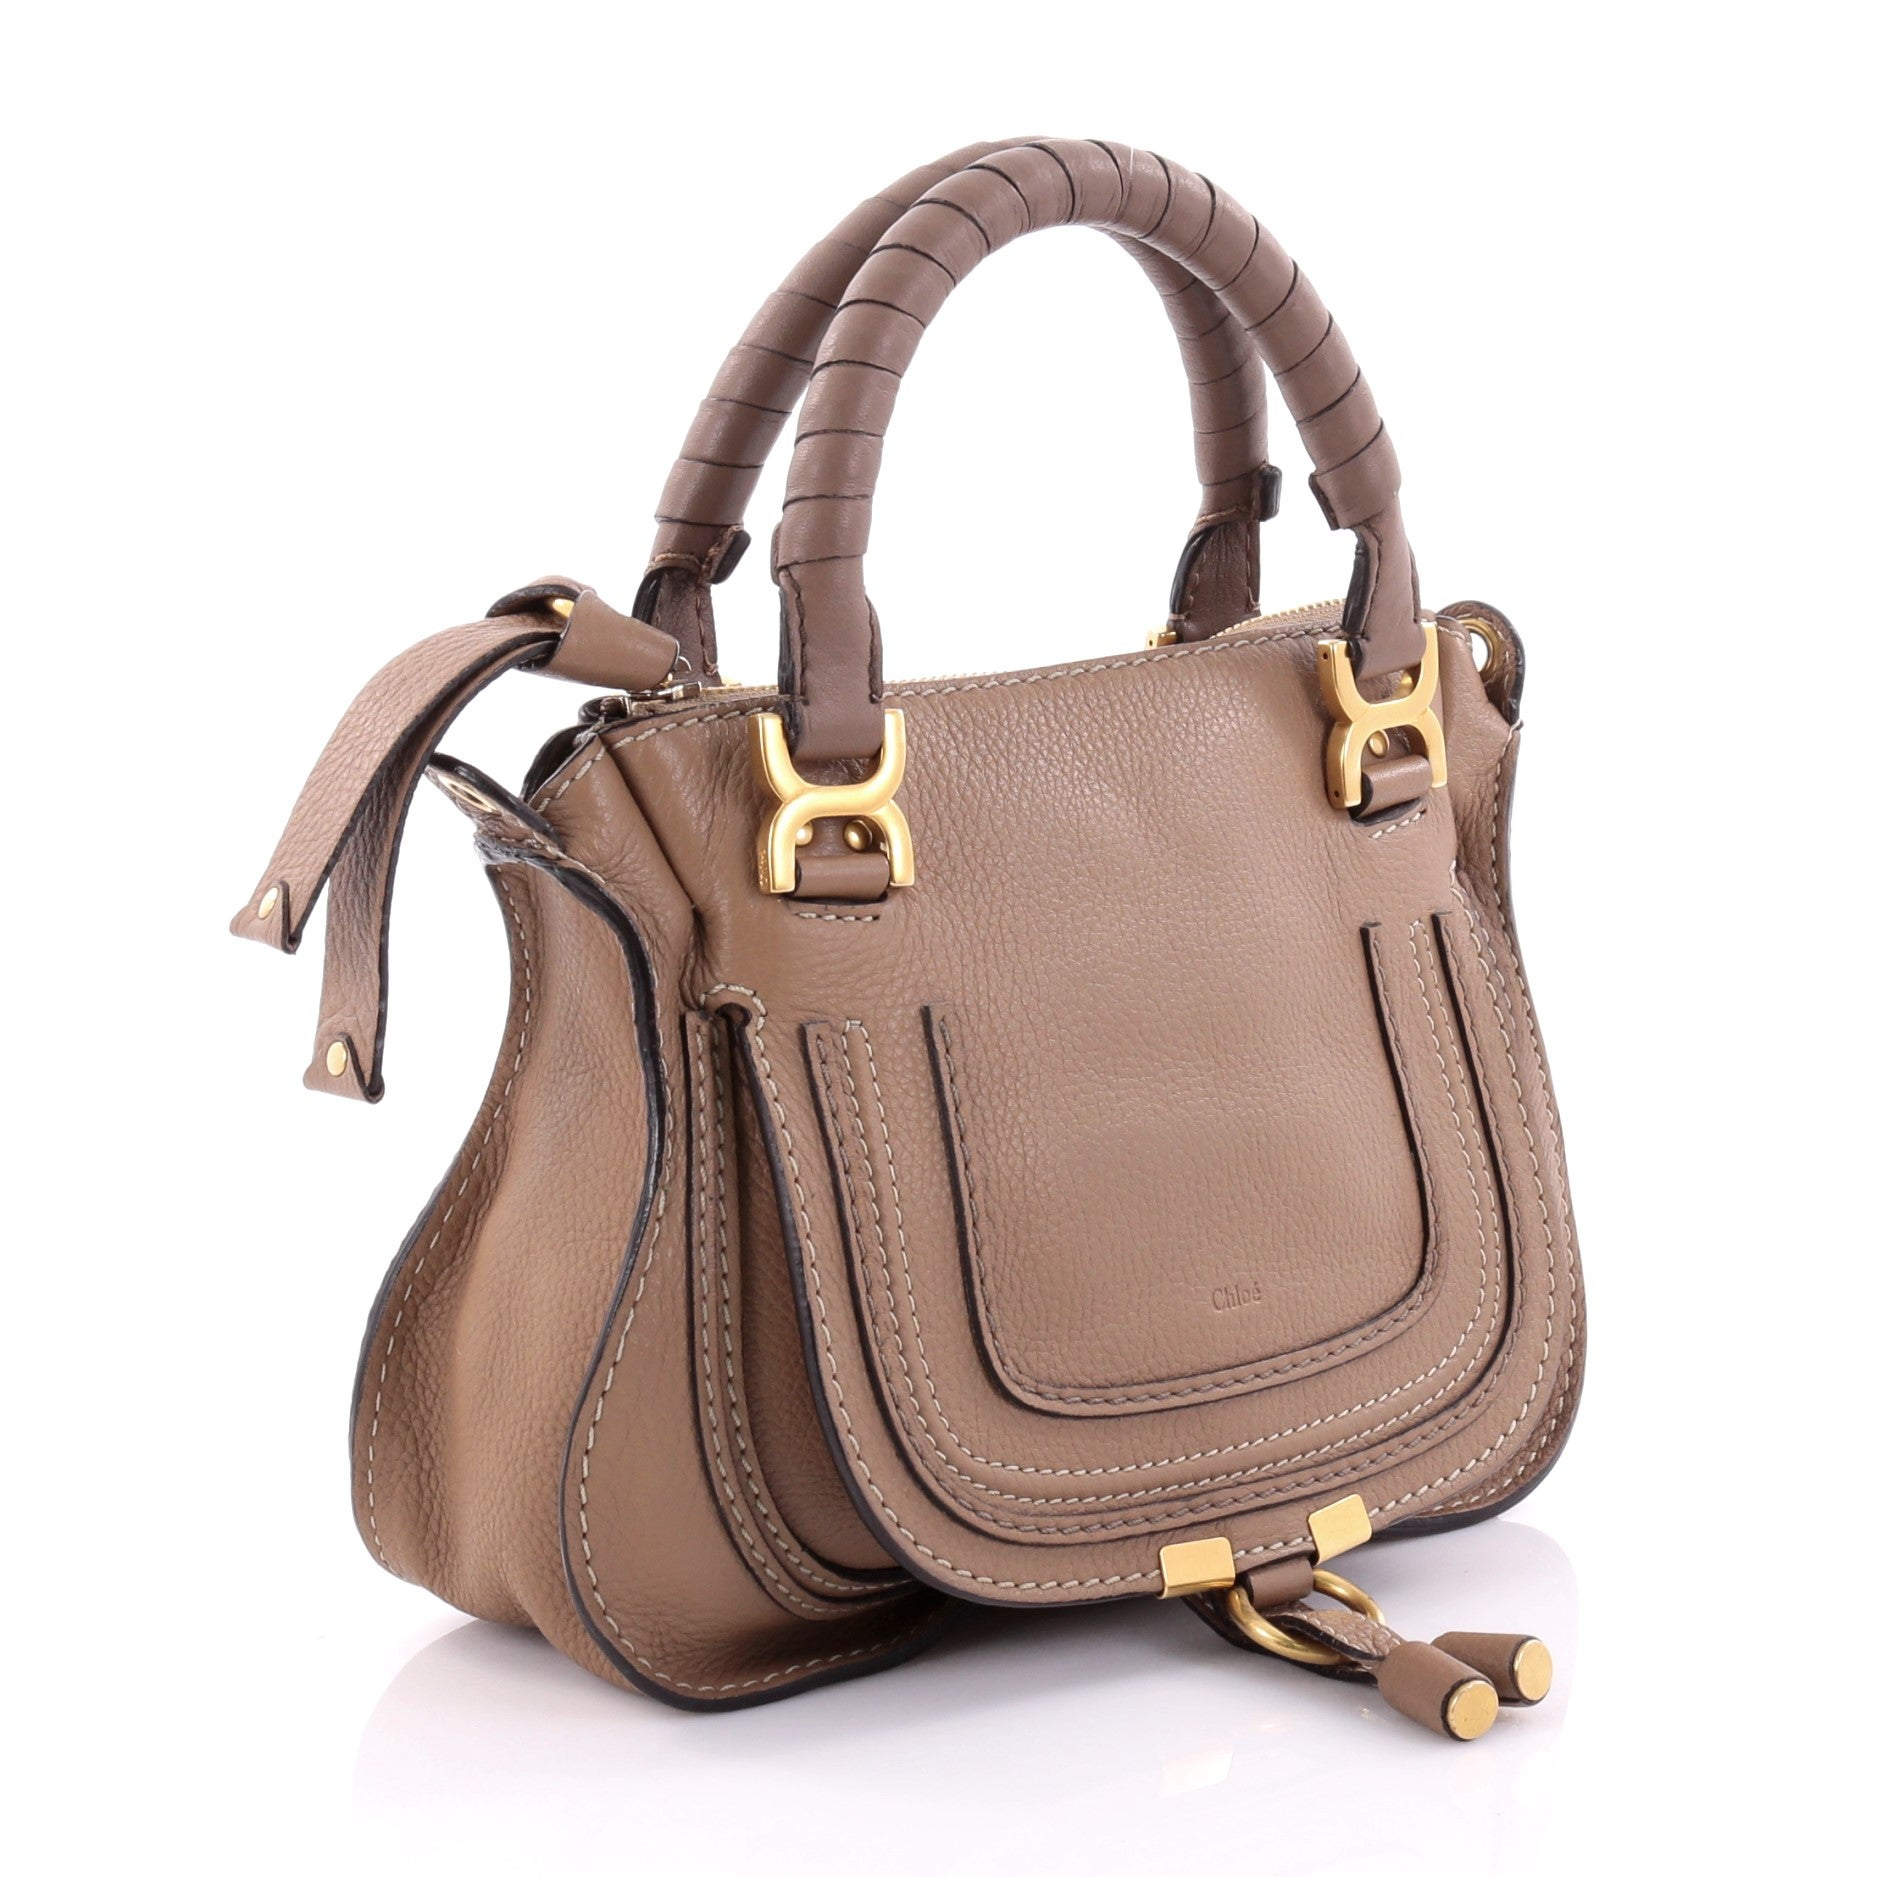 b27381e21e Chloe Marcie Satchel Leather Baby at 1stdibs